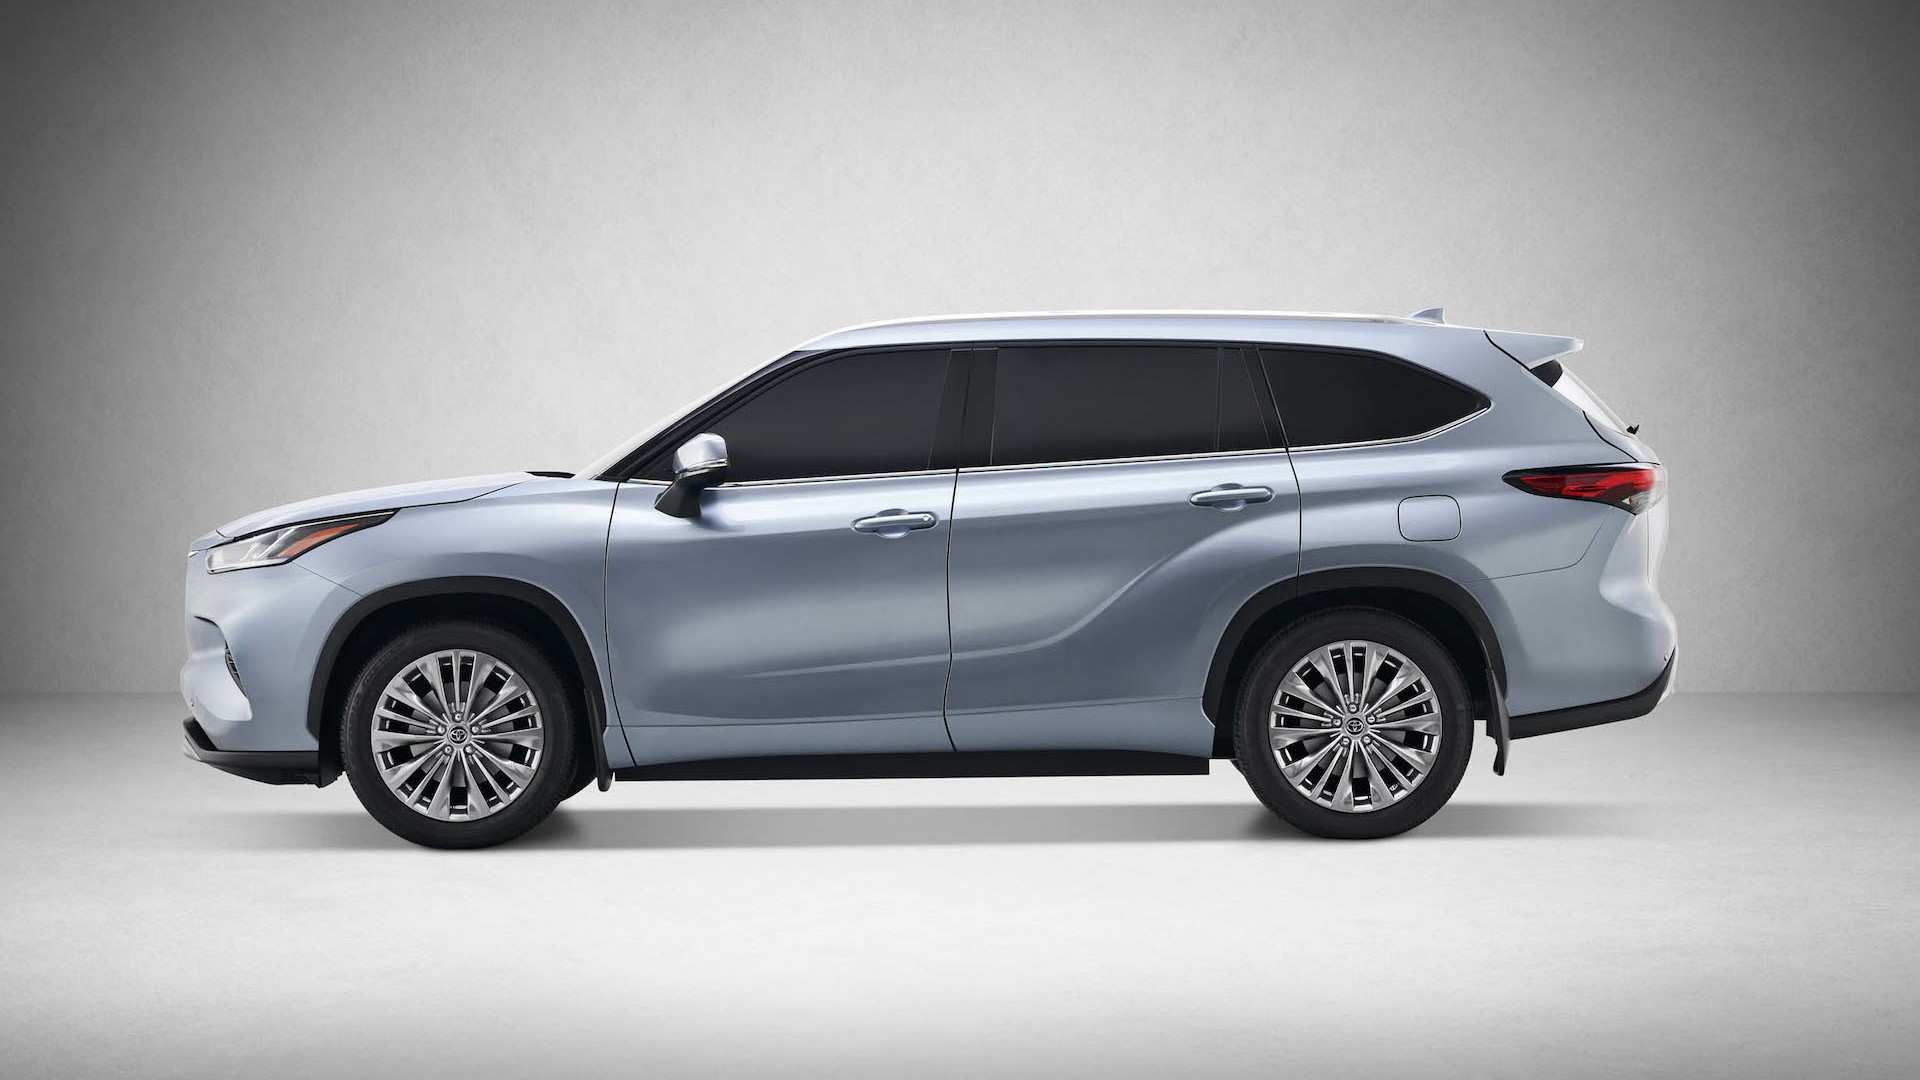 83 The Best Toyota Highlander 2020 Style